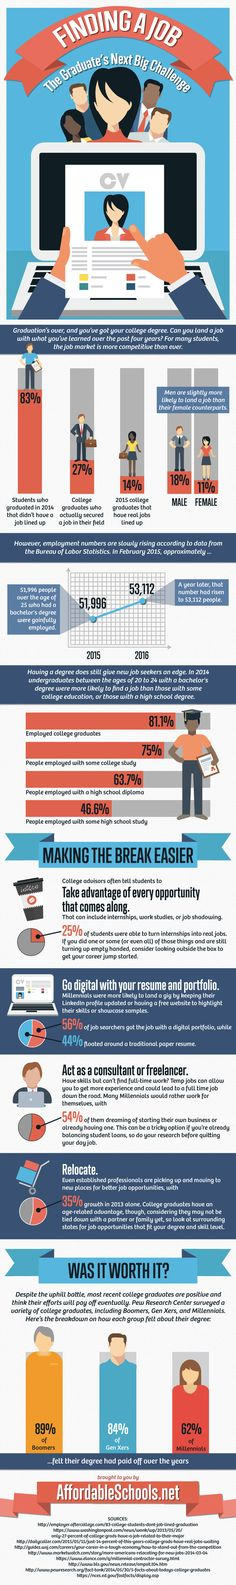 Share this infographic on your site! Source: AffordableSchools.net Finding a Job: The Graduate's Next Big Challenge Graduation's over, and you've got your college degree. Can you land a job with what you've learned over the past four years? For many students, the job market is more competitive than ever. • 27 percent: The percentage of …